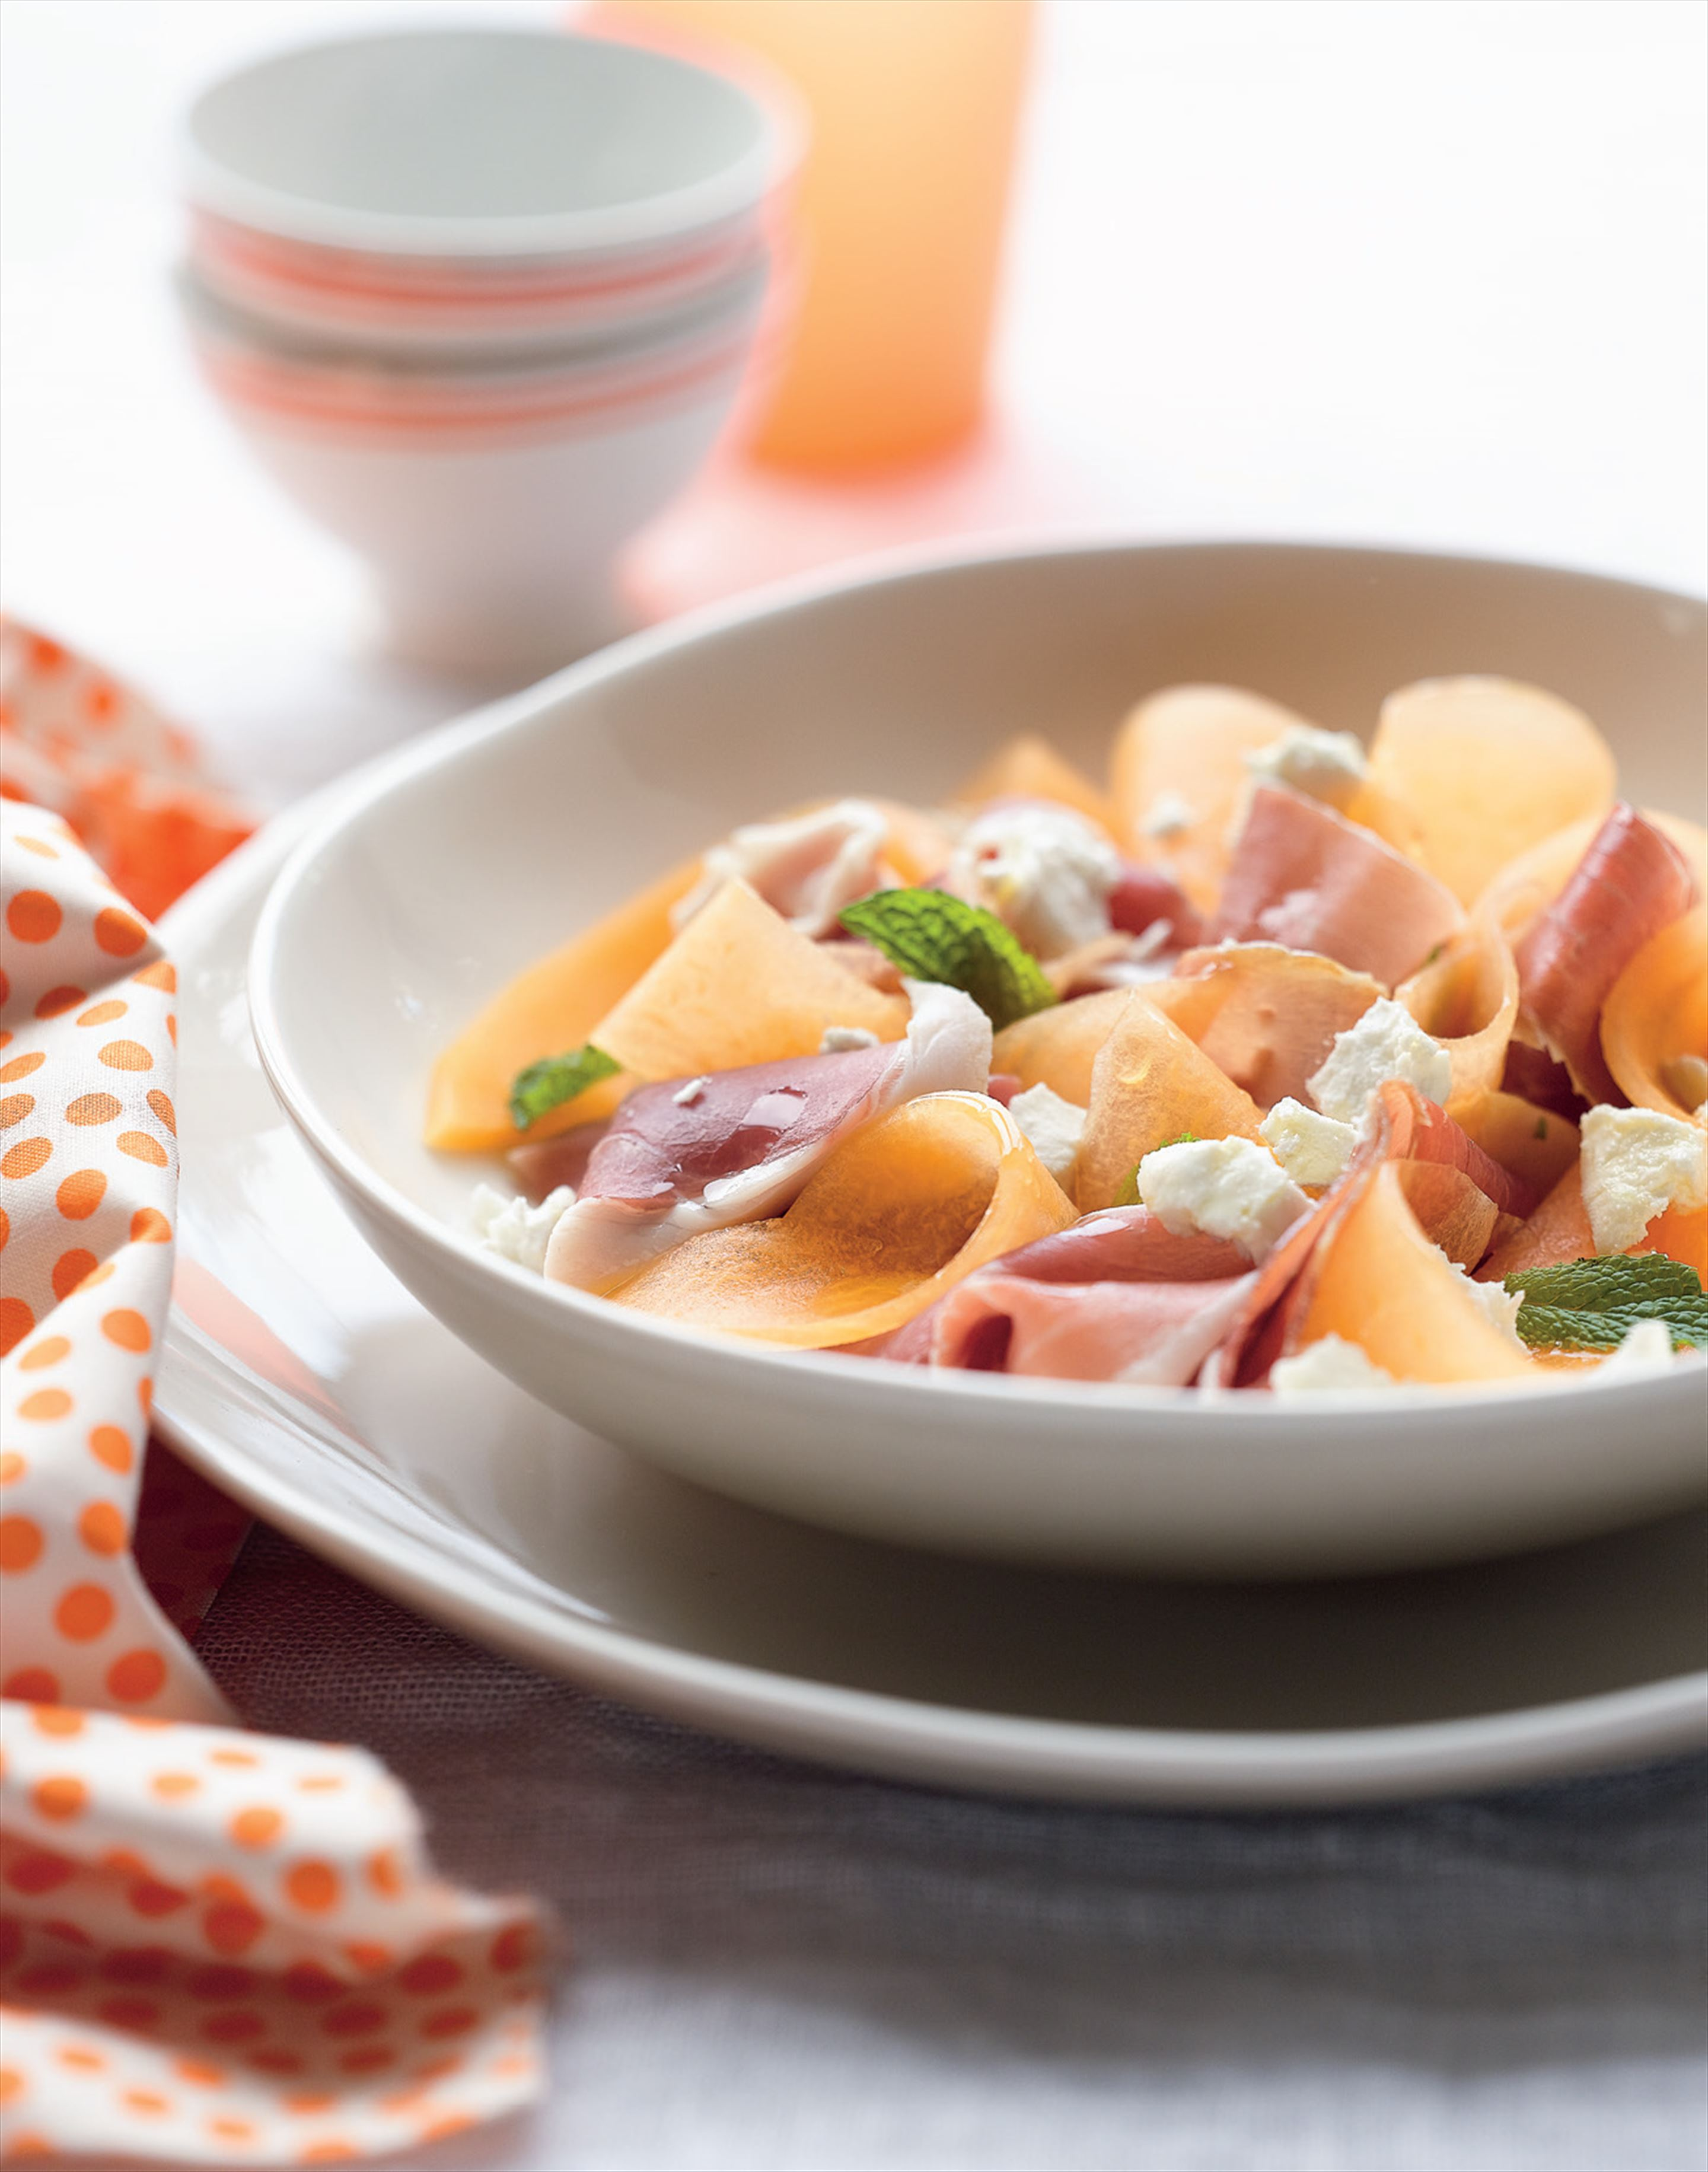 Prosciutto, melon and goat's cheese salad